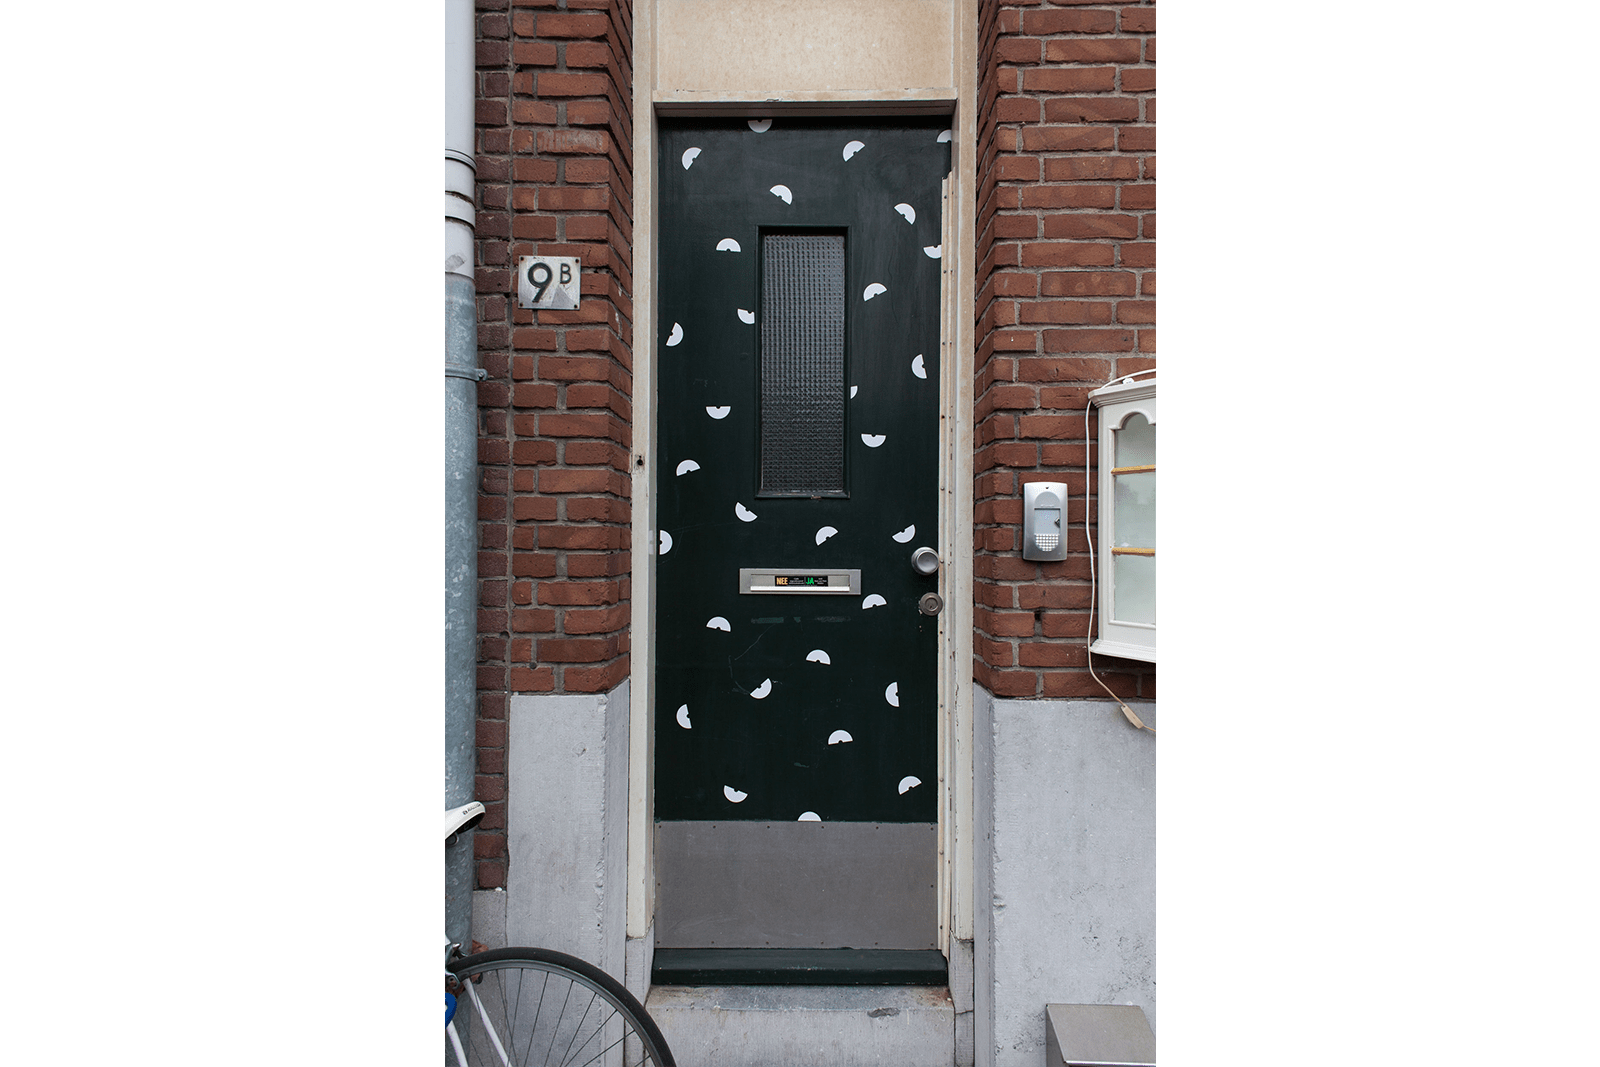 When did you think to mention? by Mathijs van Geest - Smoke alarm warning stickers without warning on front door, 2017